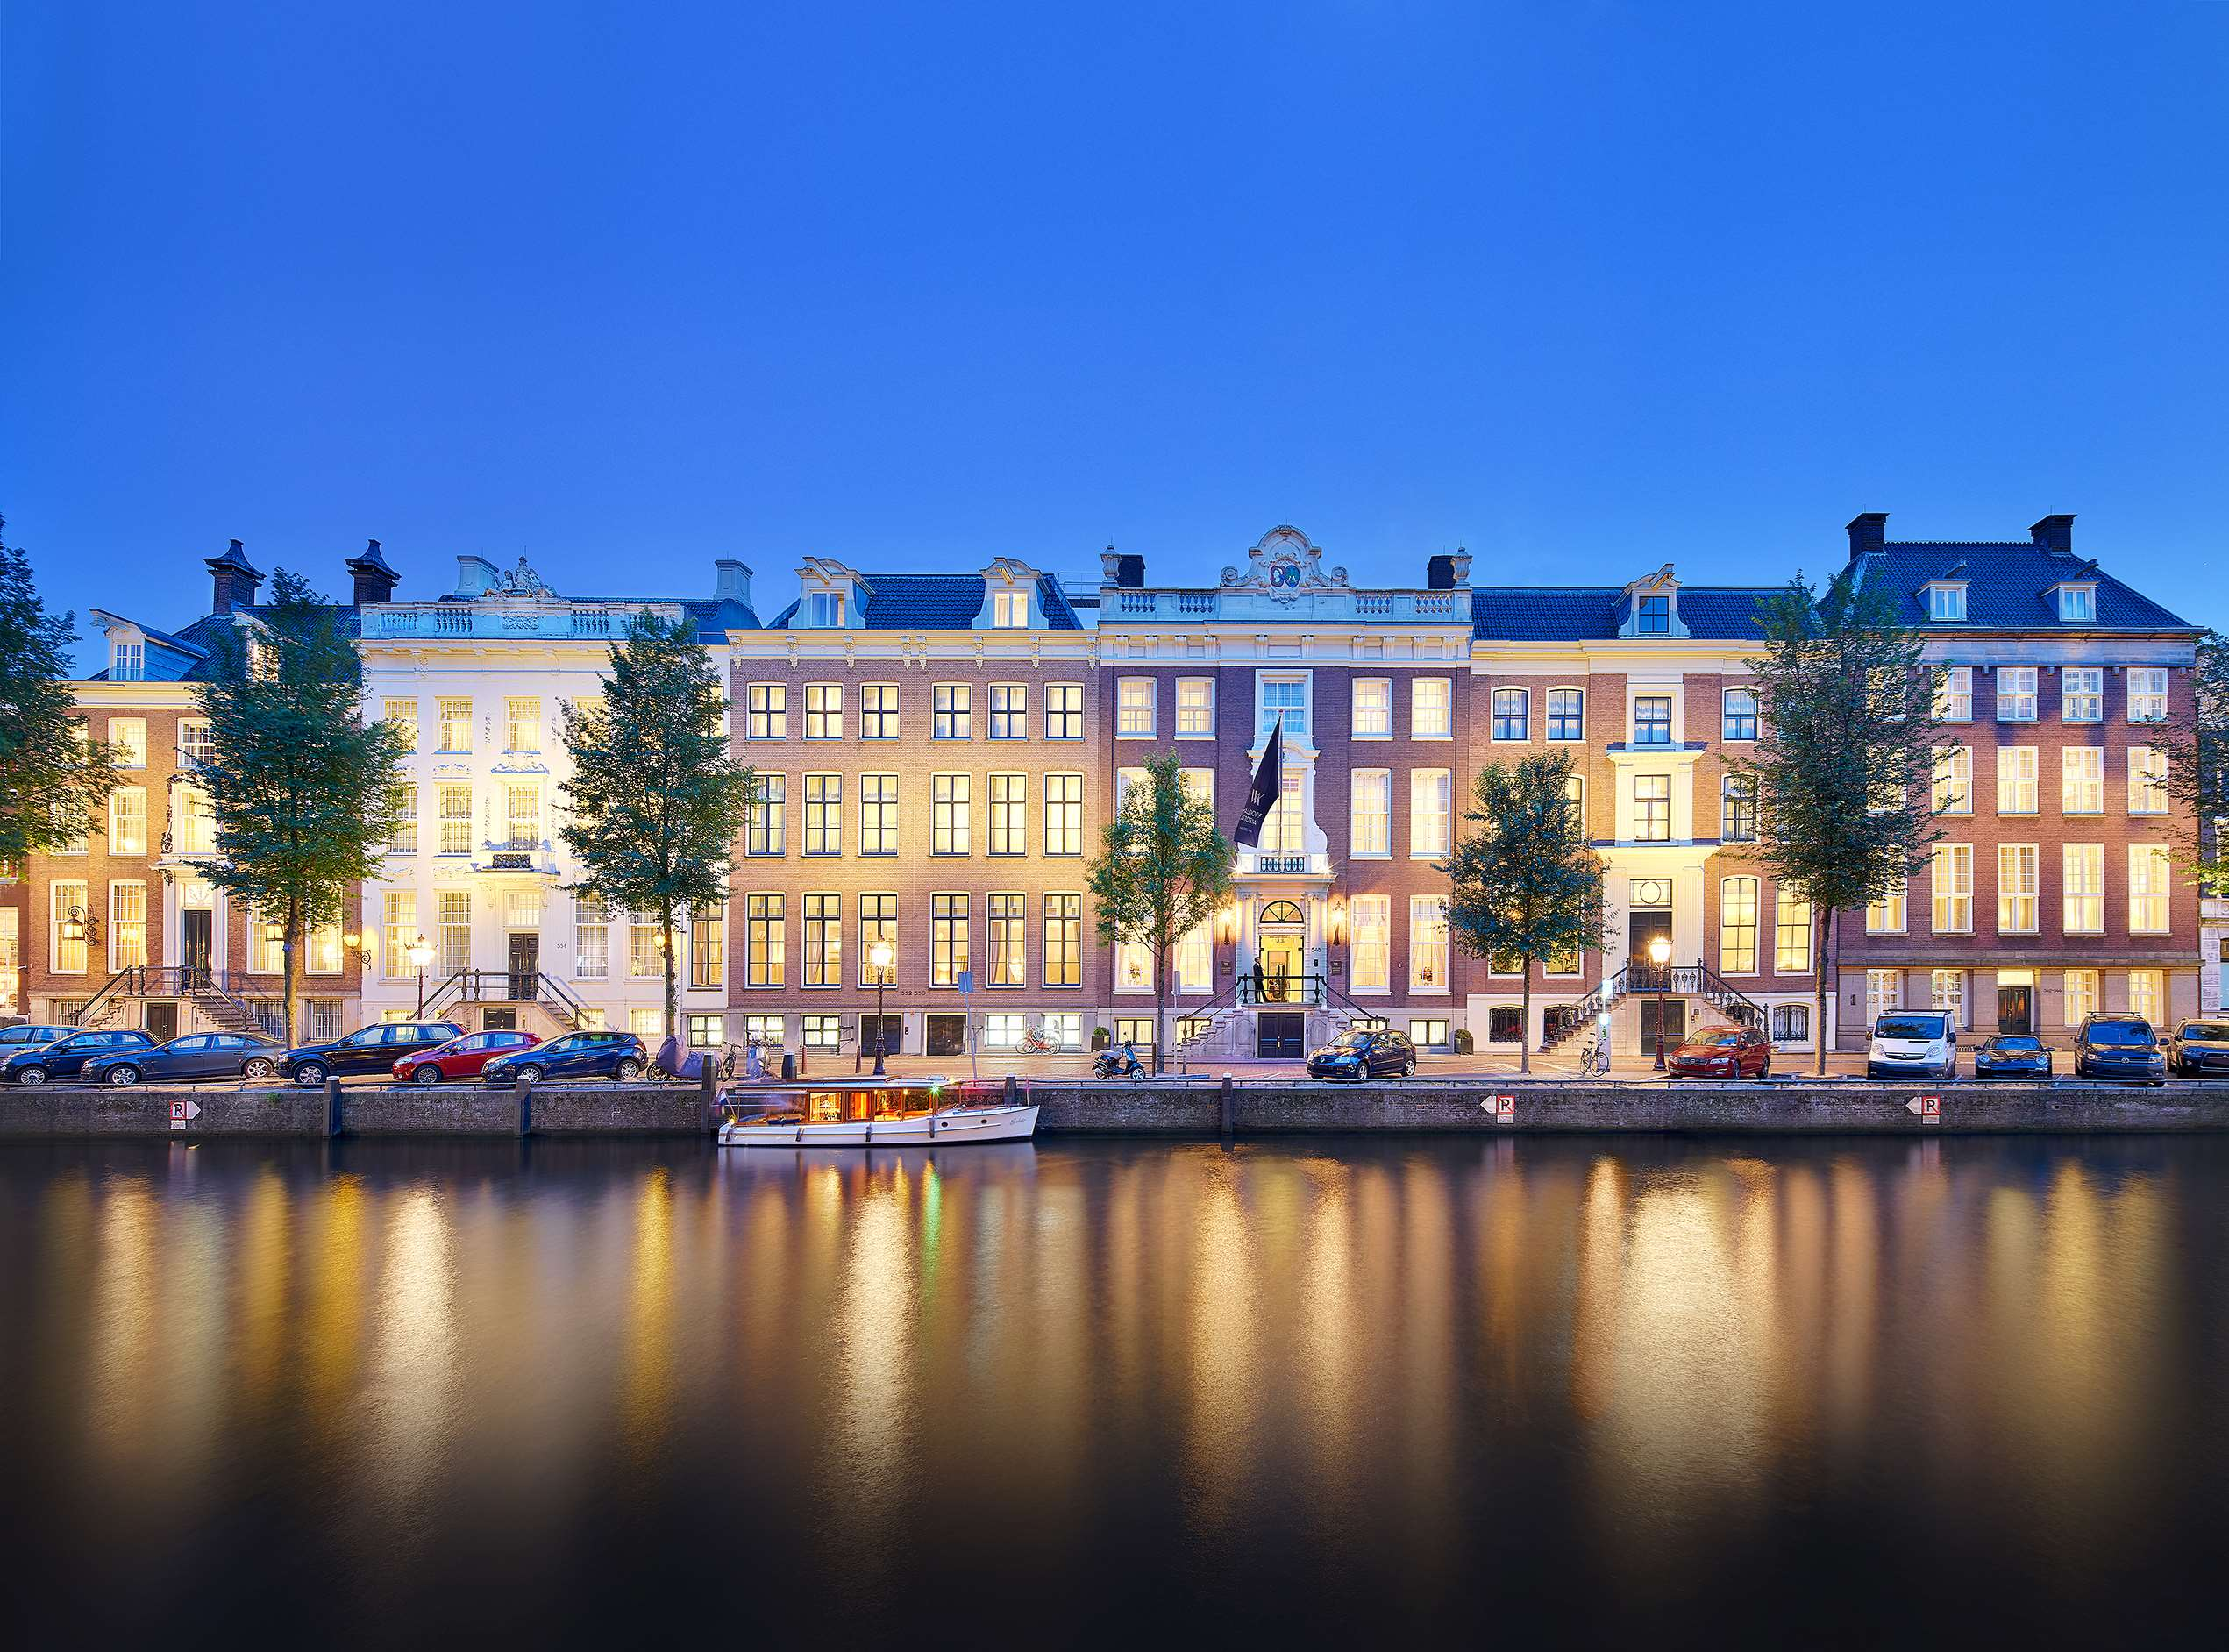 A true architectural masterpiece, Waldorf Astoria Amsterdam has the privilege of being housed in six magnificent 17th and 18th-century canal palaces.